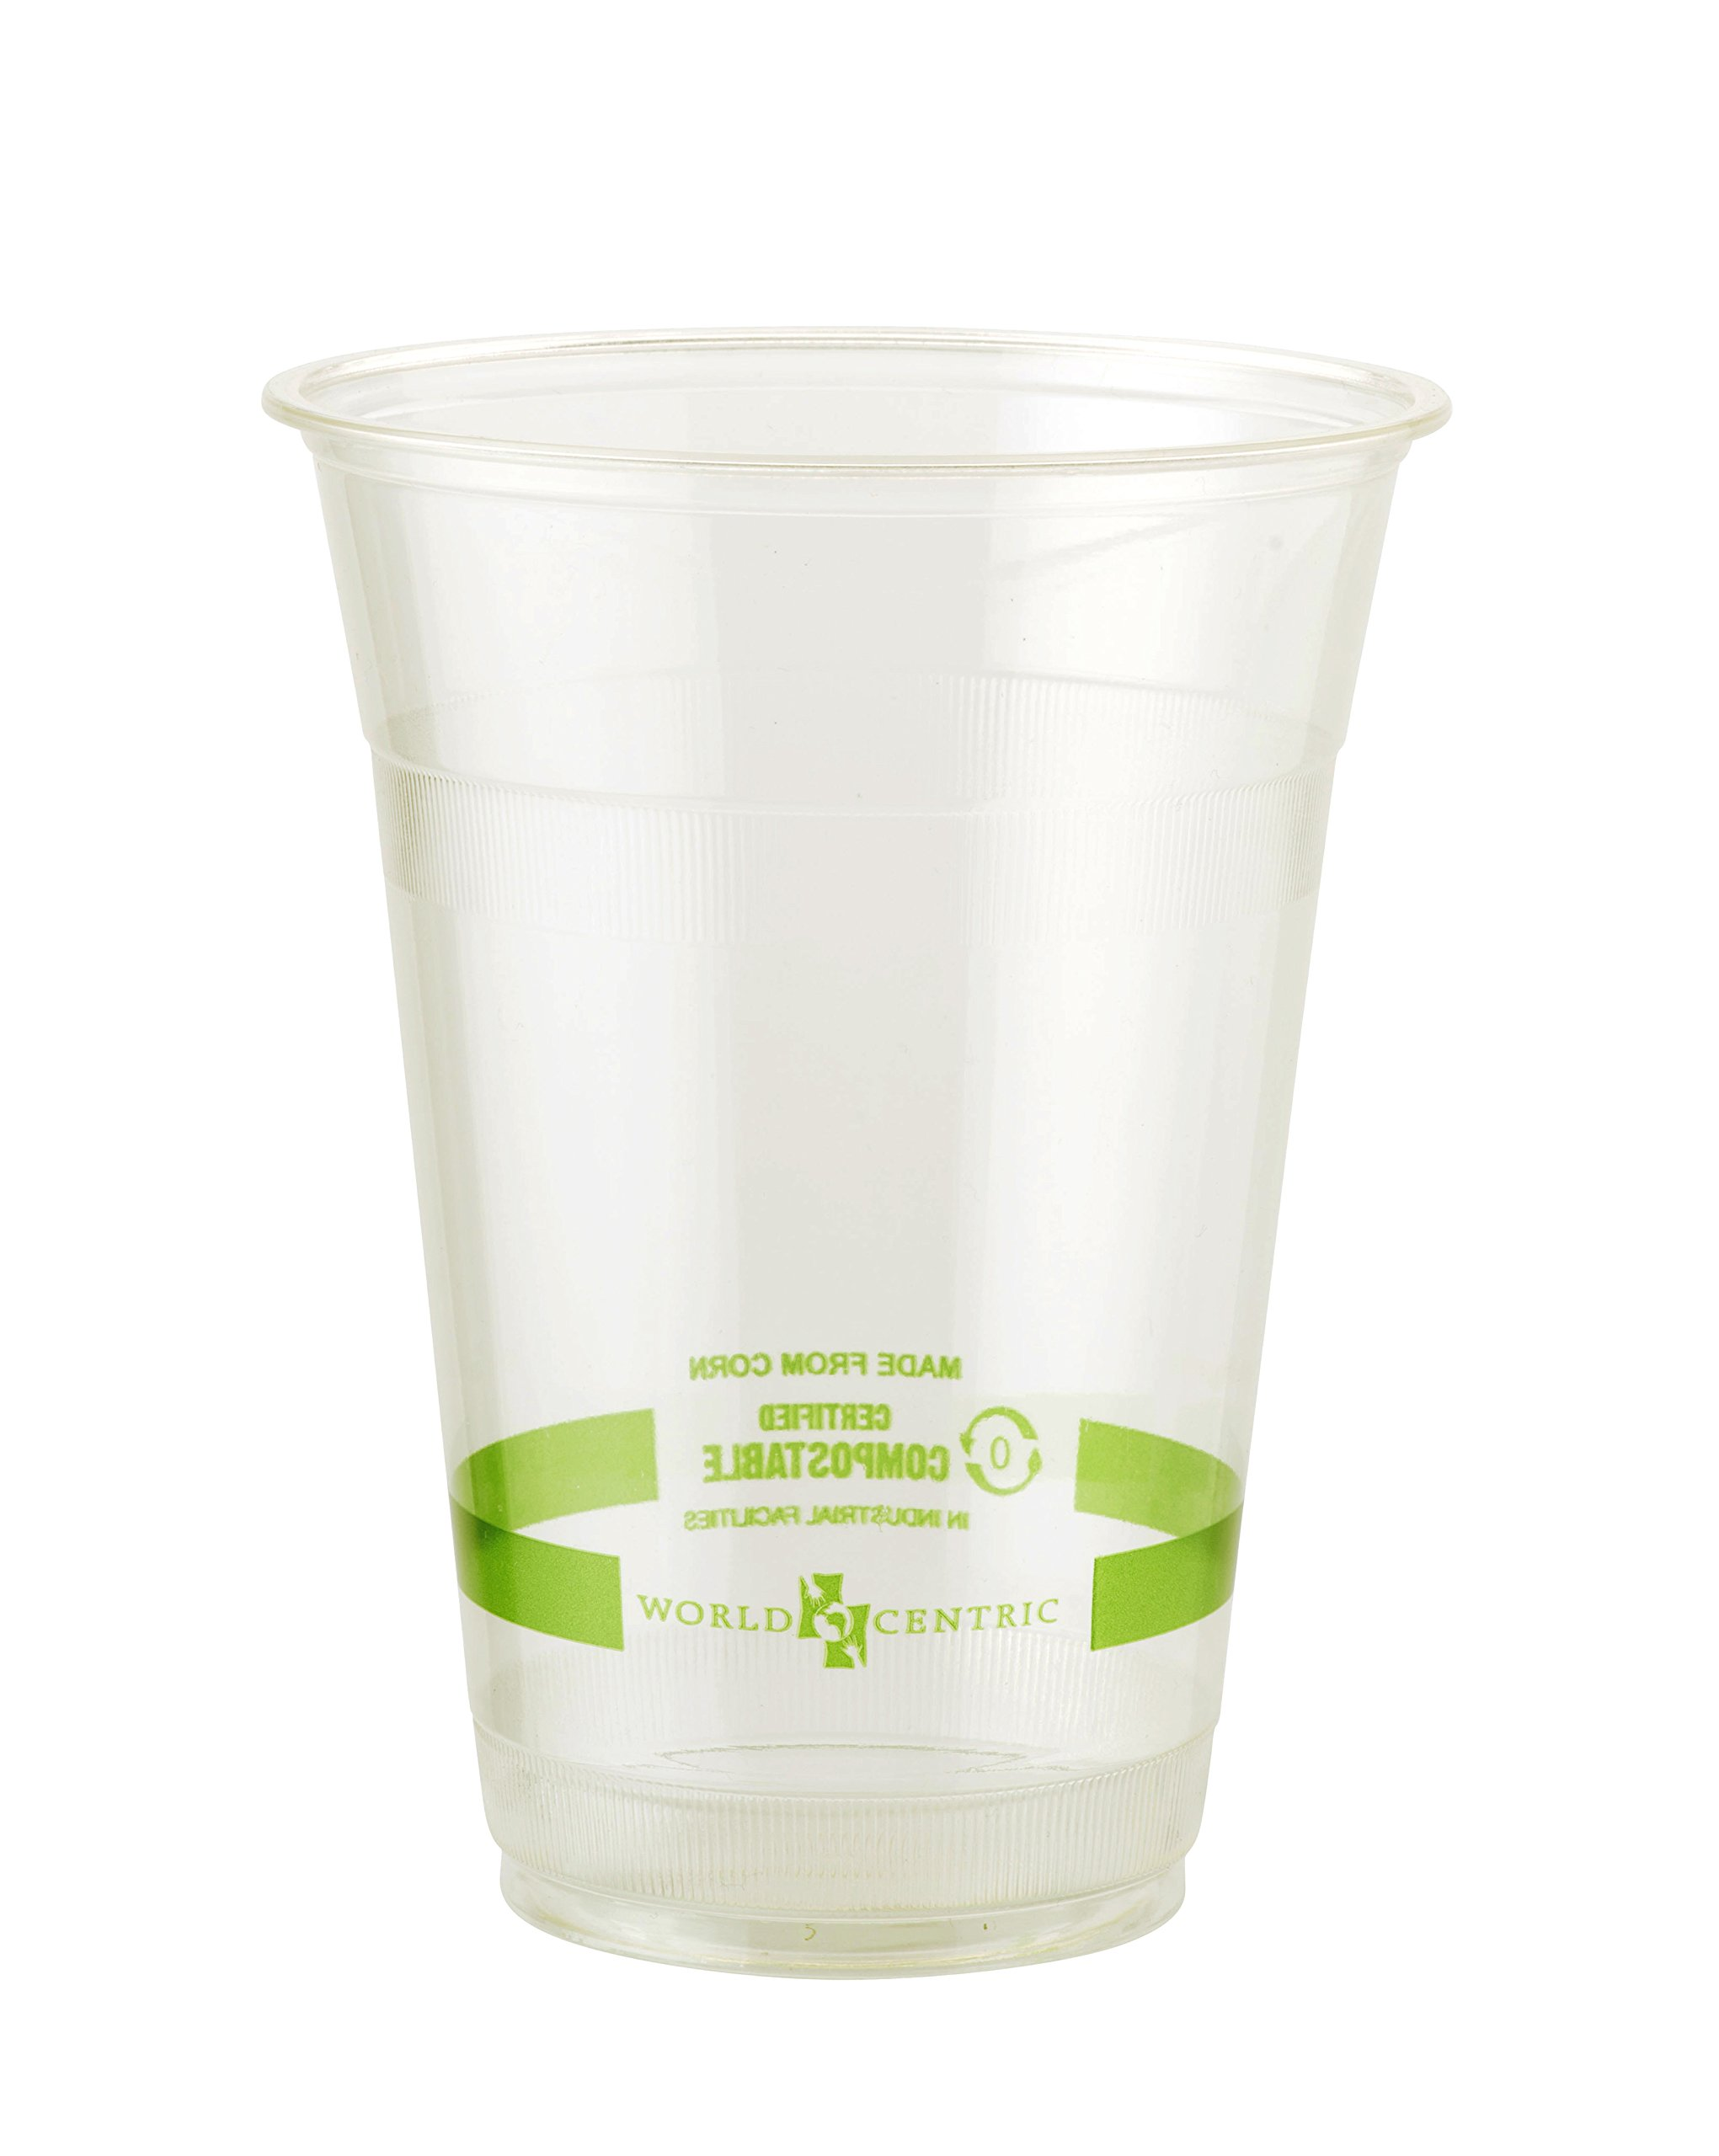 World Centric Compostable Corn 16-Ounce Clear Cold Cup, 1000 ct